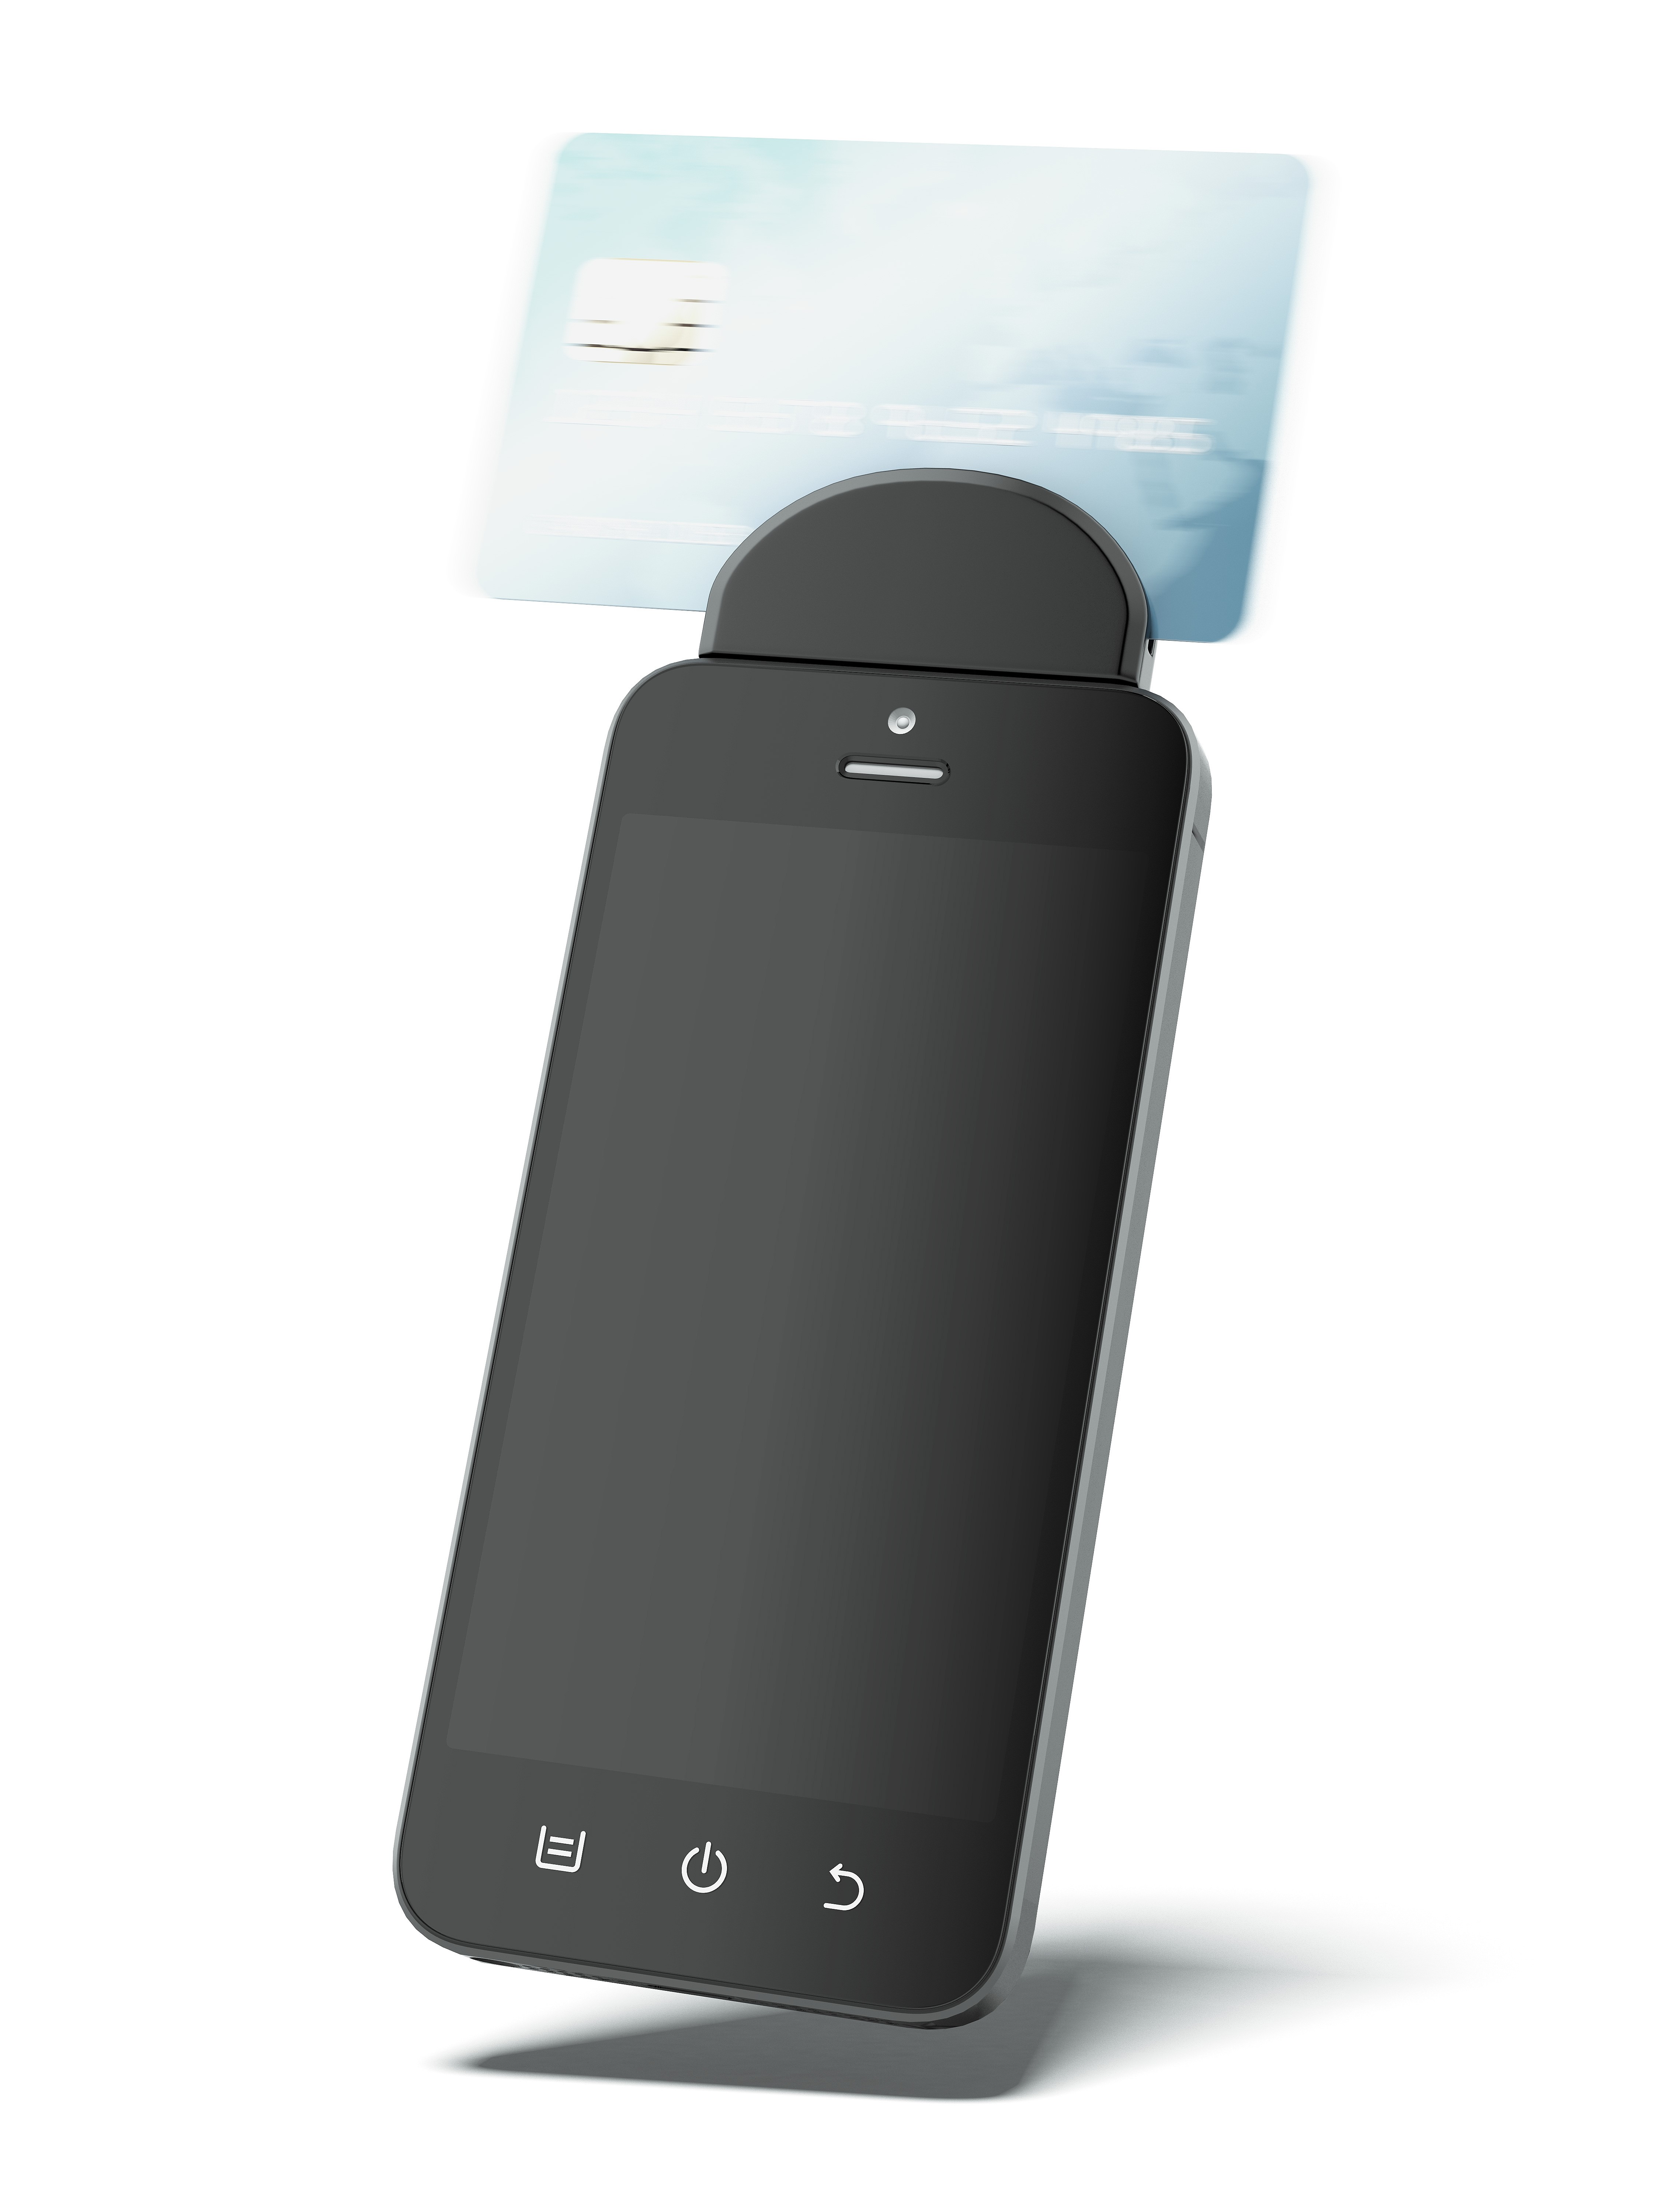 Advantages Of Using A Mobile Phone Card Reader